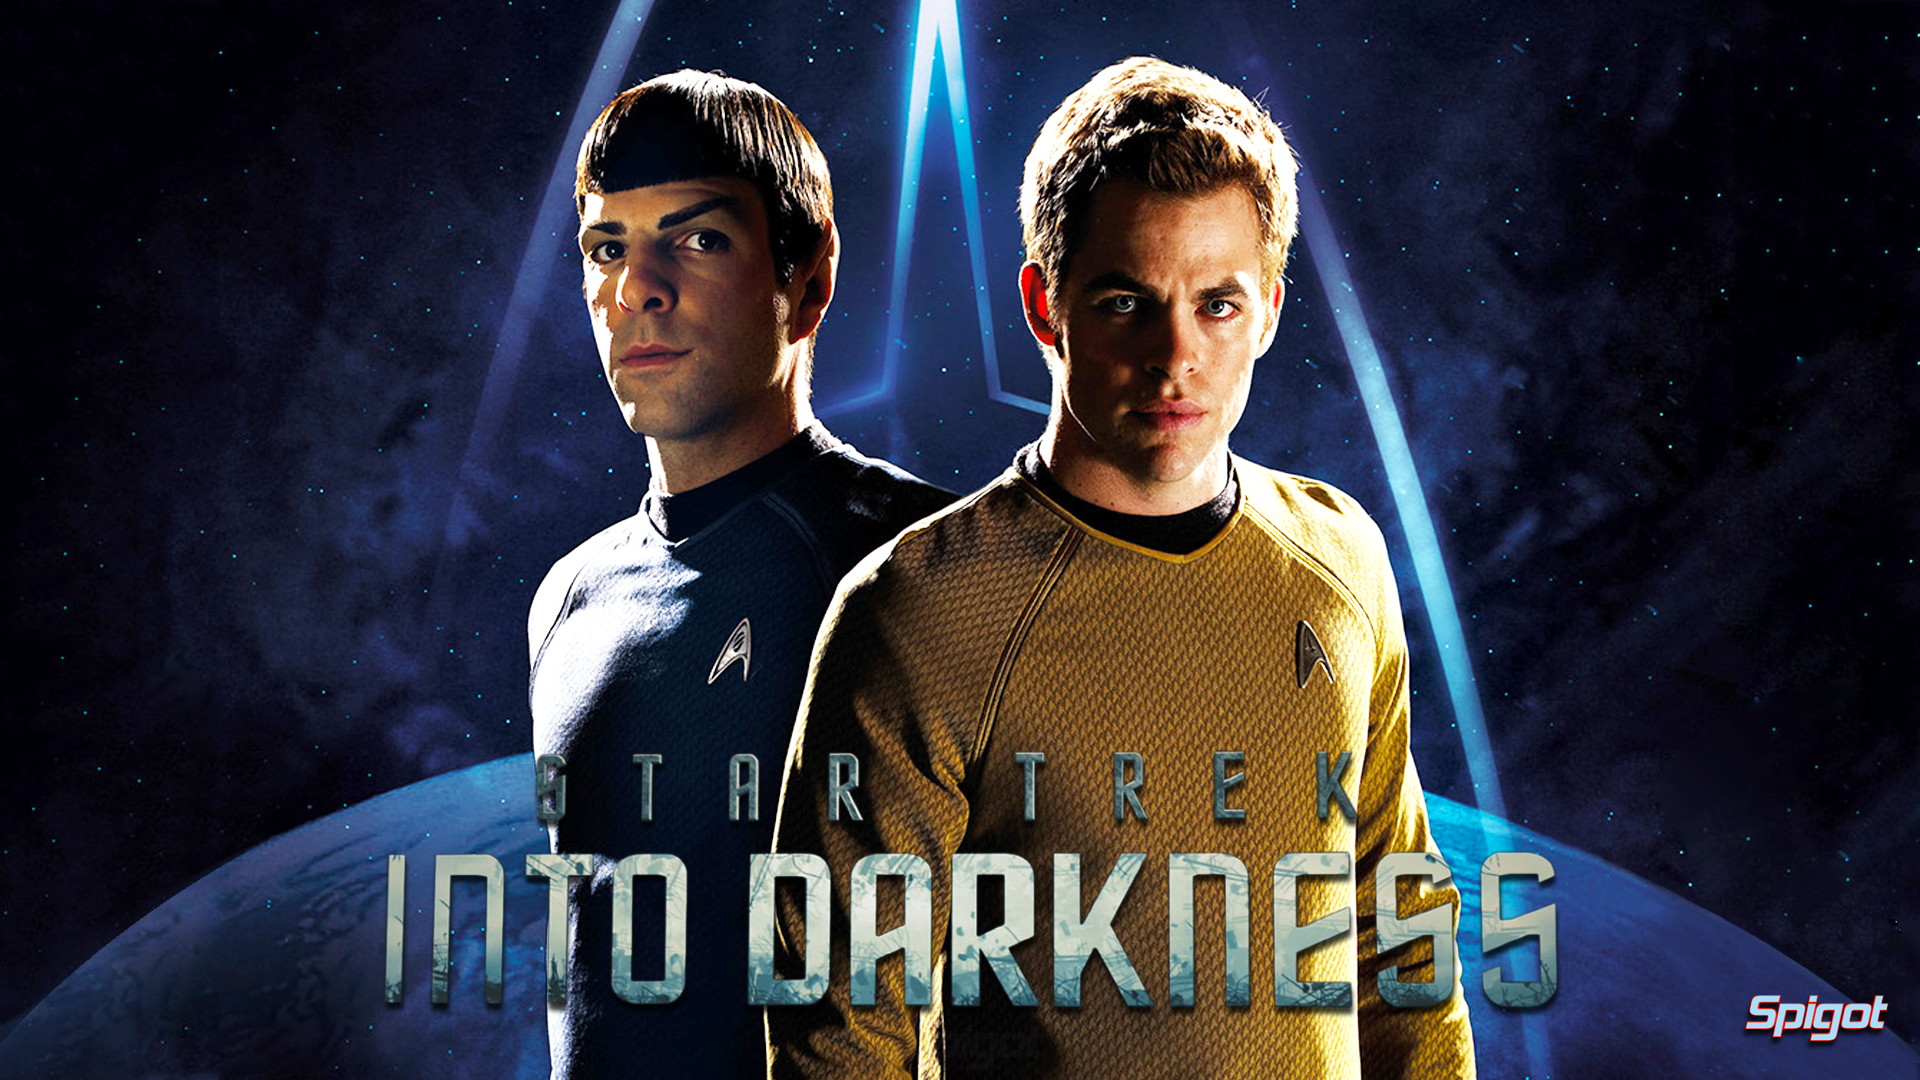 Star Trek Into Darkness Wallpapers: George Spigot's Blog